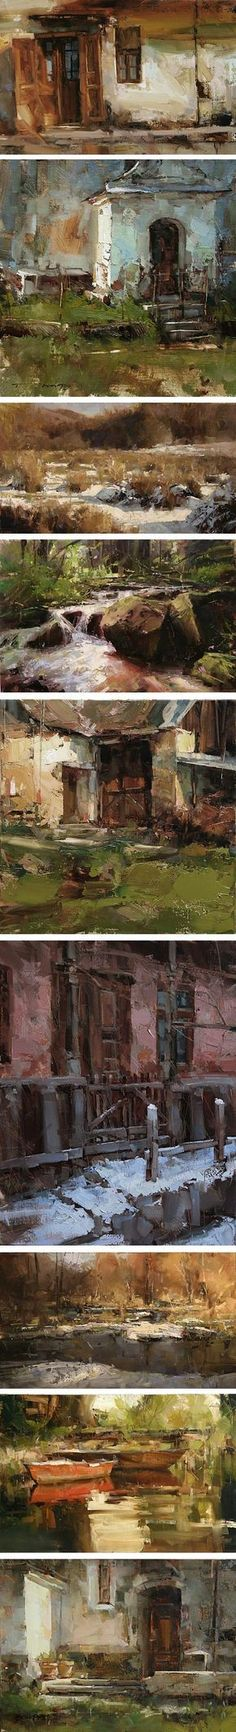 Tibor Nagy I really like the expressive strokes while somehow still capturing an amazing amount of detail.